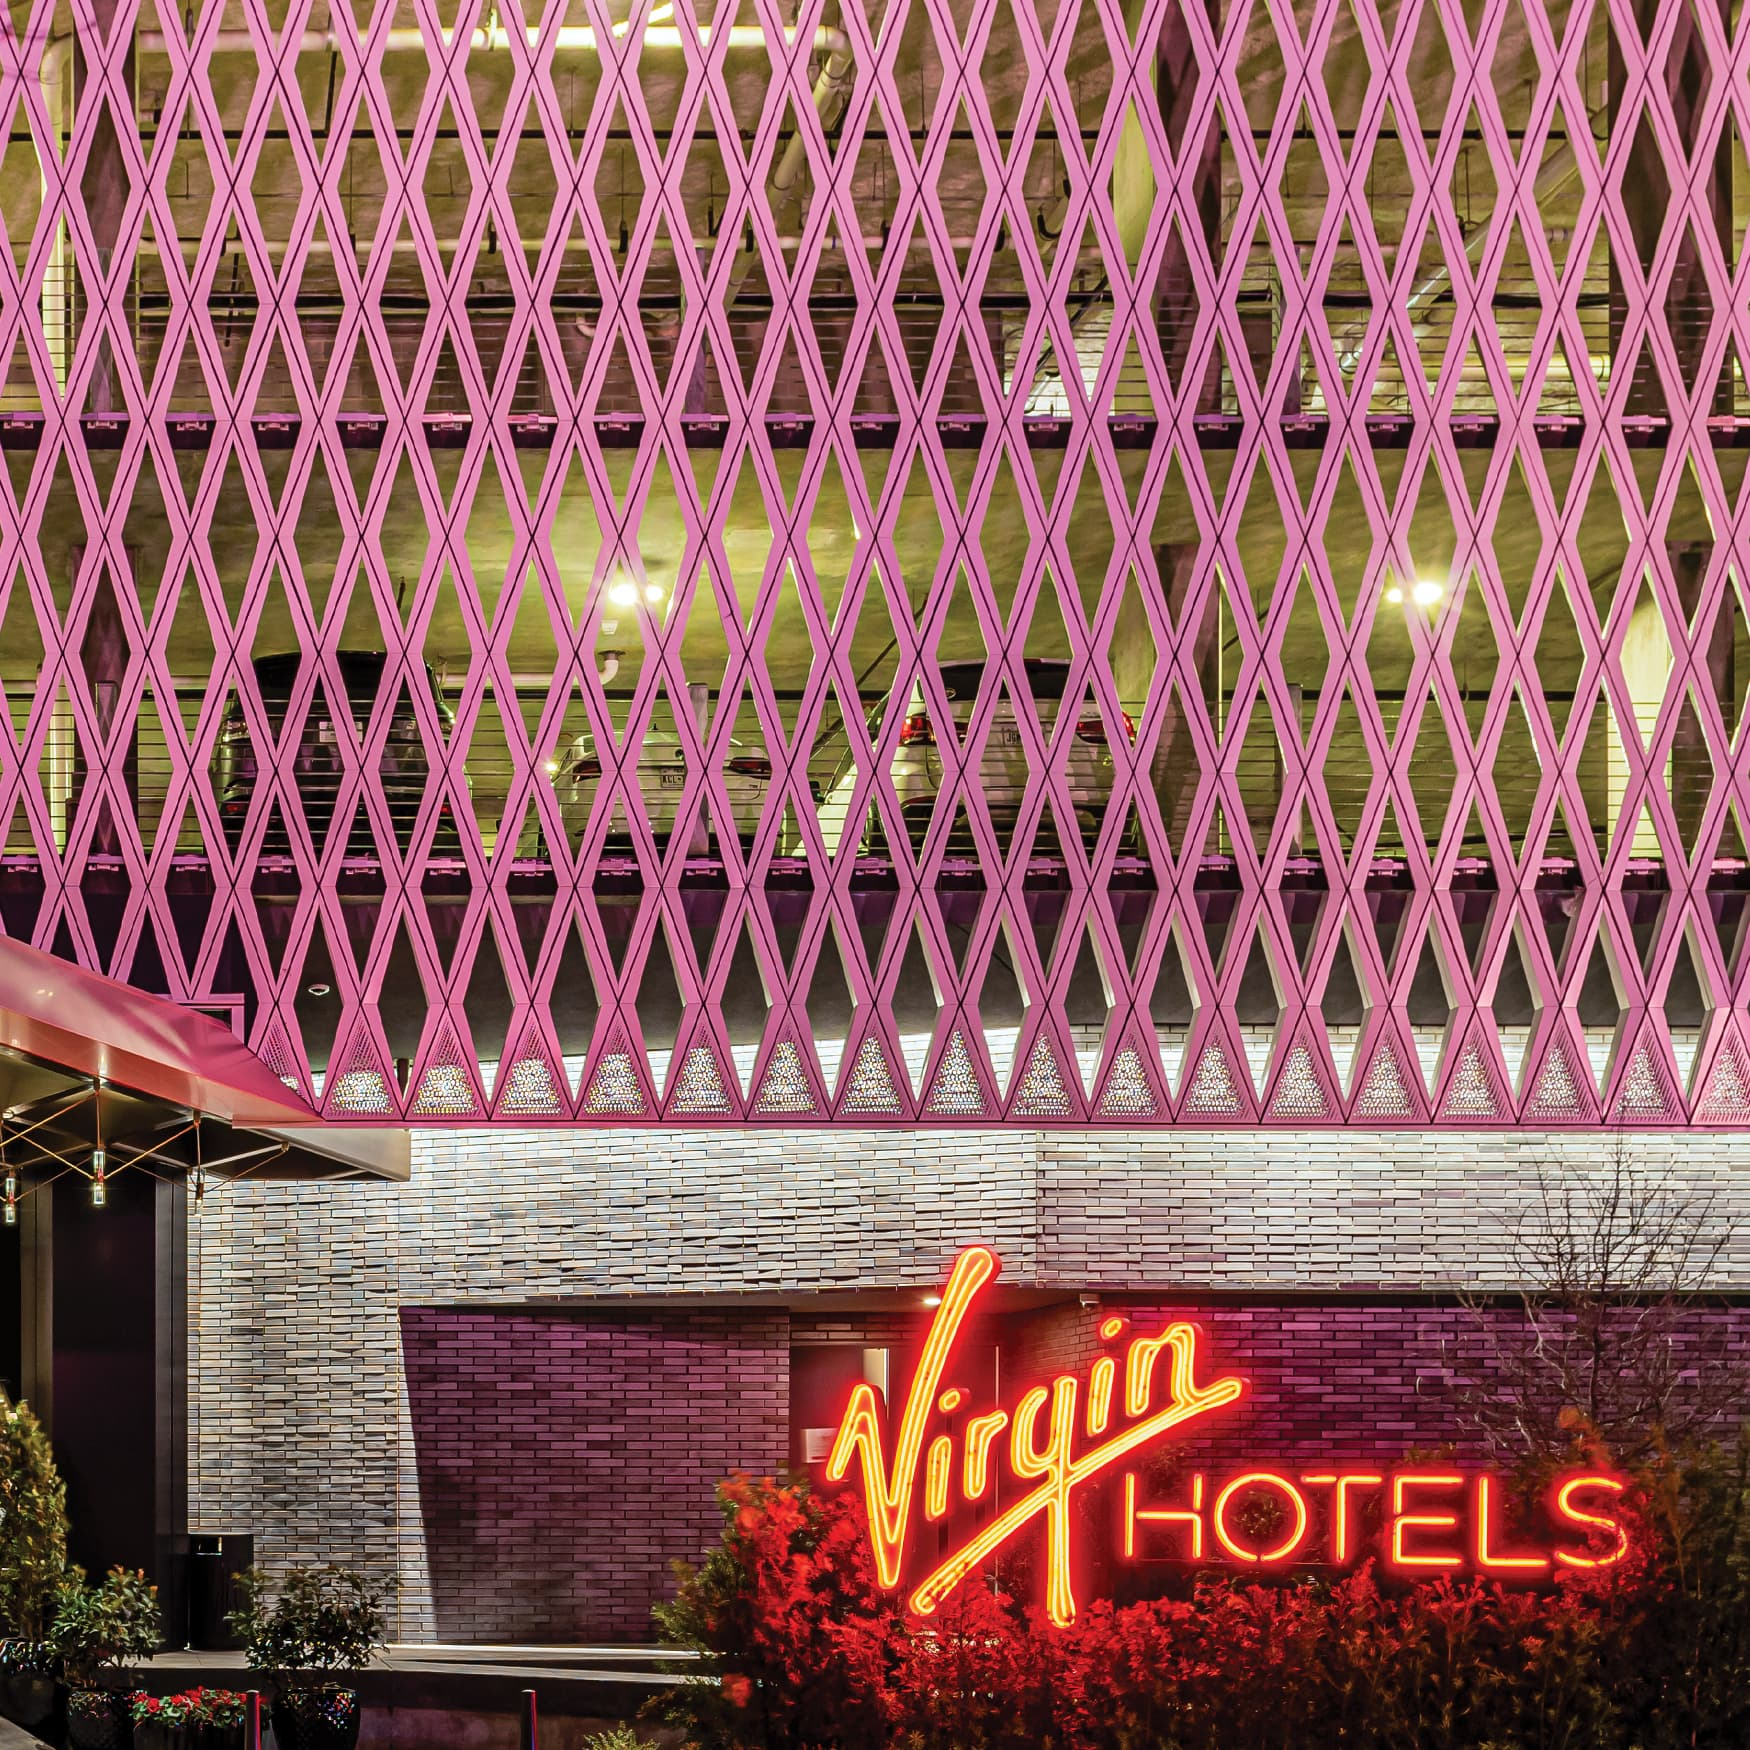 Neon monuments signage and parking garage facade design at Virgin Hotels in Dallas, TX